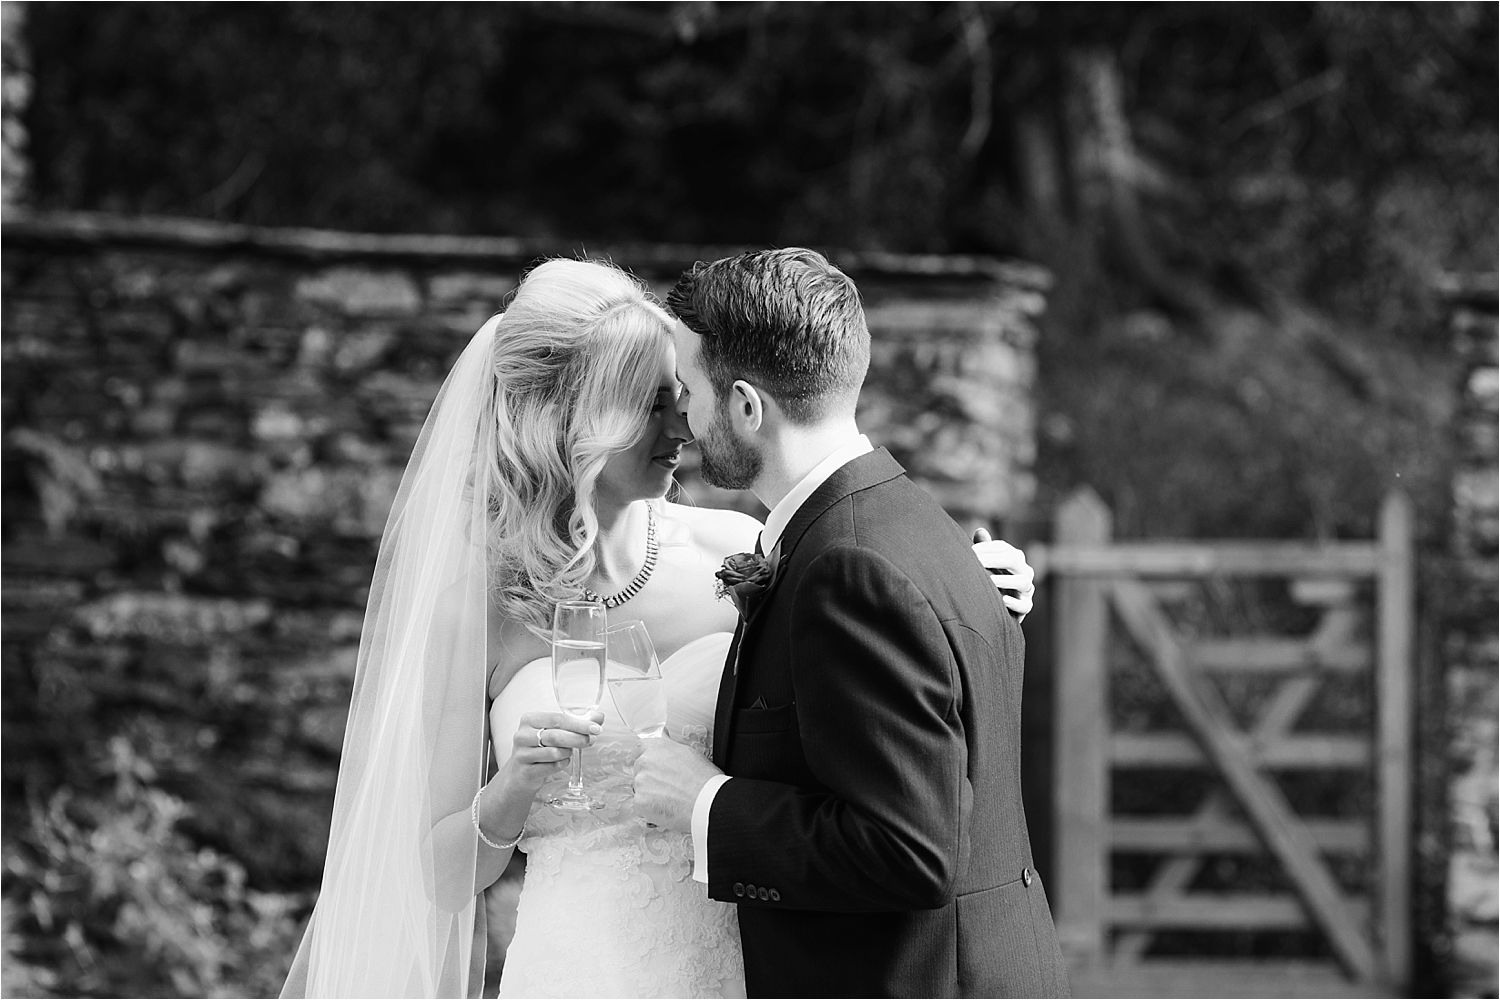 A close hug in the grounds of Belmount Hall for the bride and groom